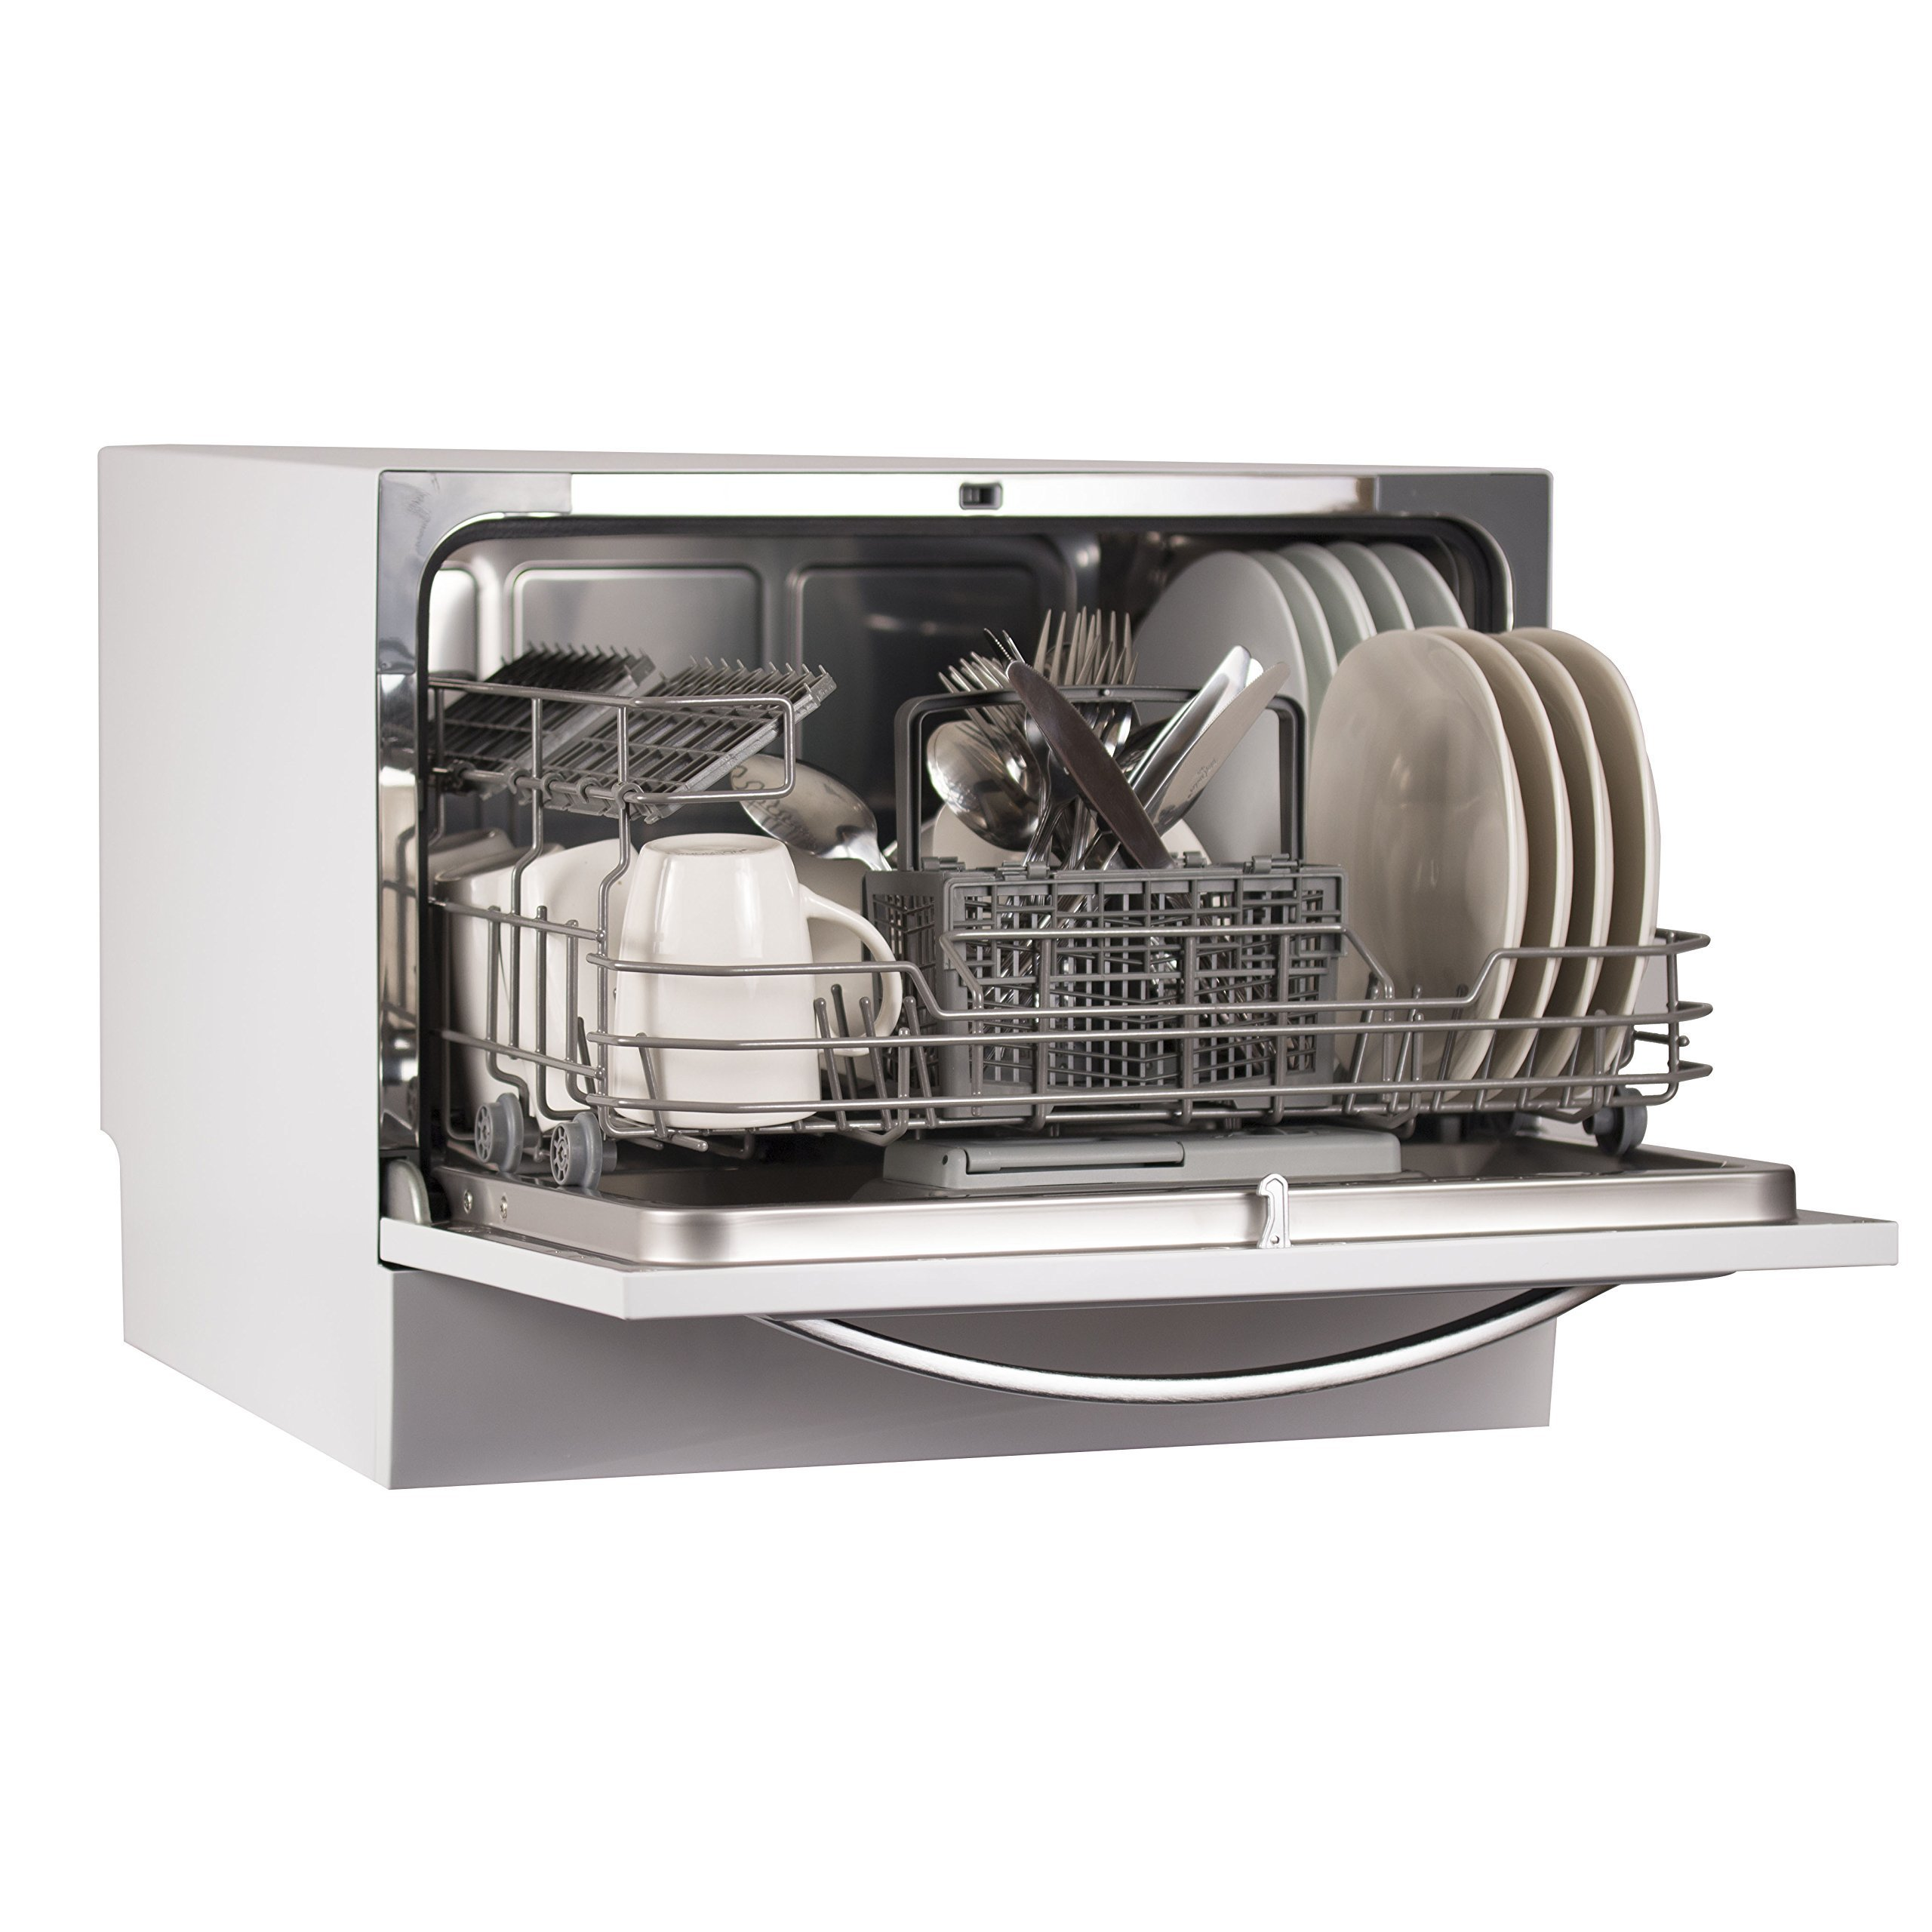 countertop review dishwasher dishes open reviews spt clean sd ybkitchen